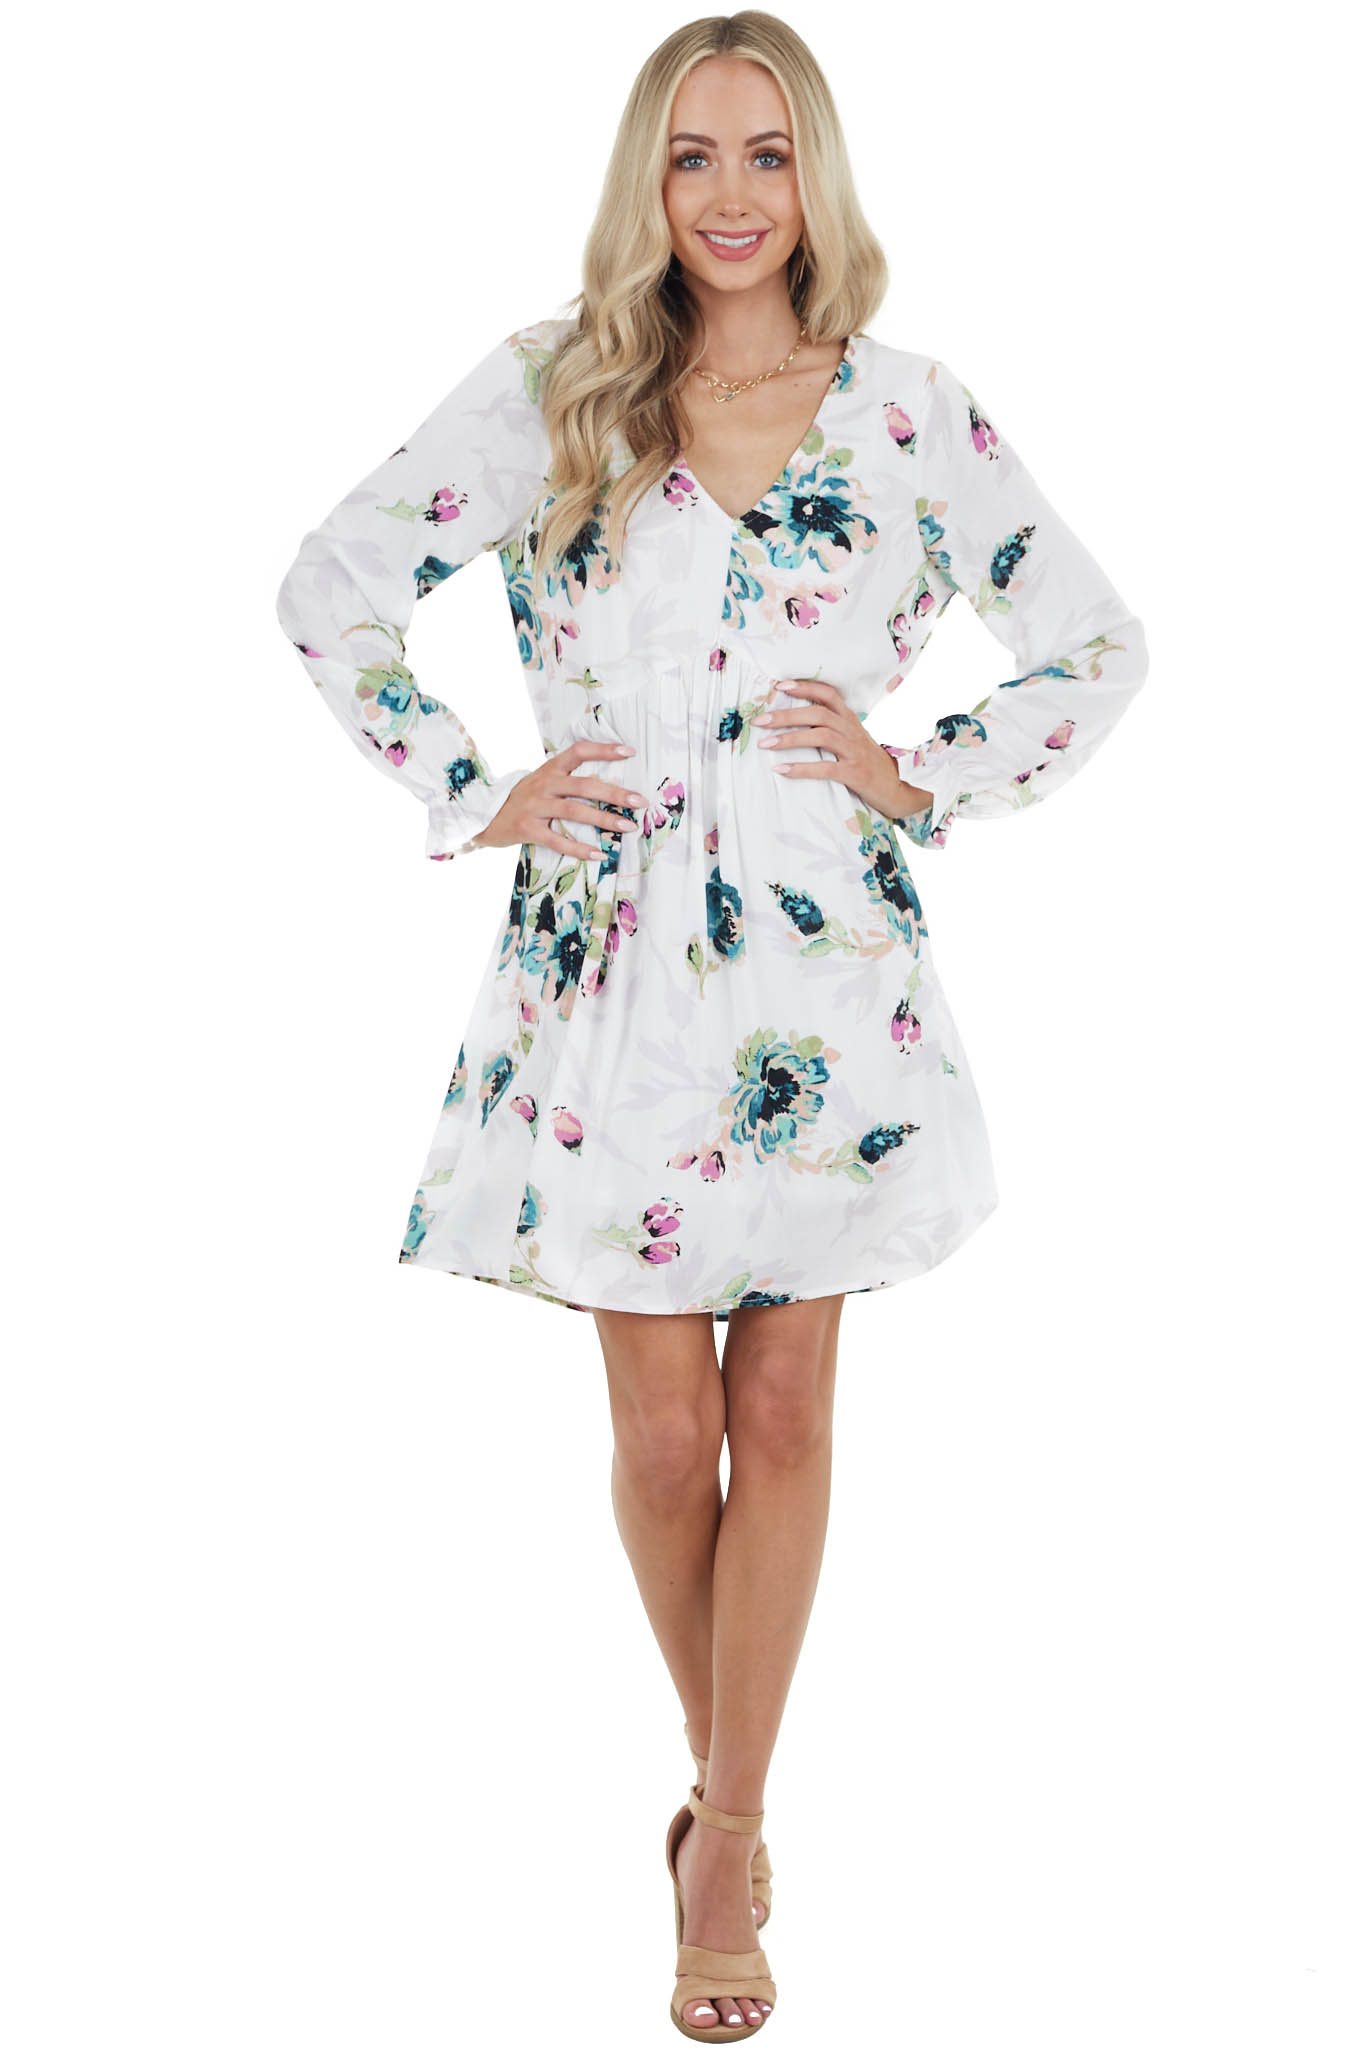 Off White Floral Short Babydoll Dress with Long Sleeves